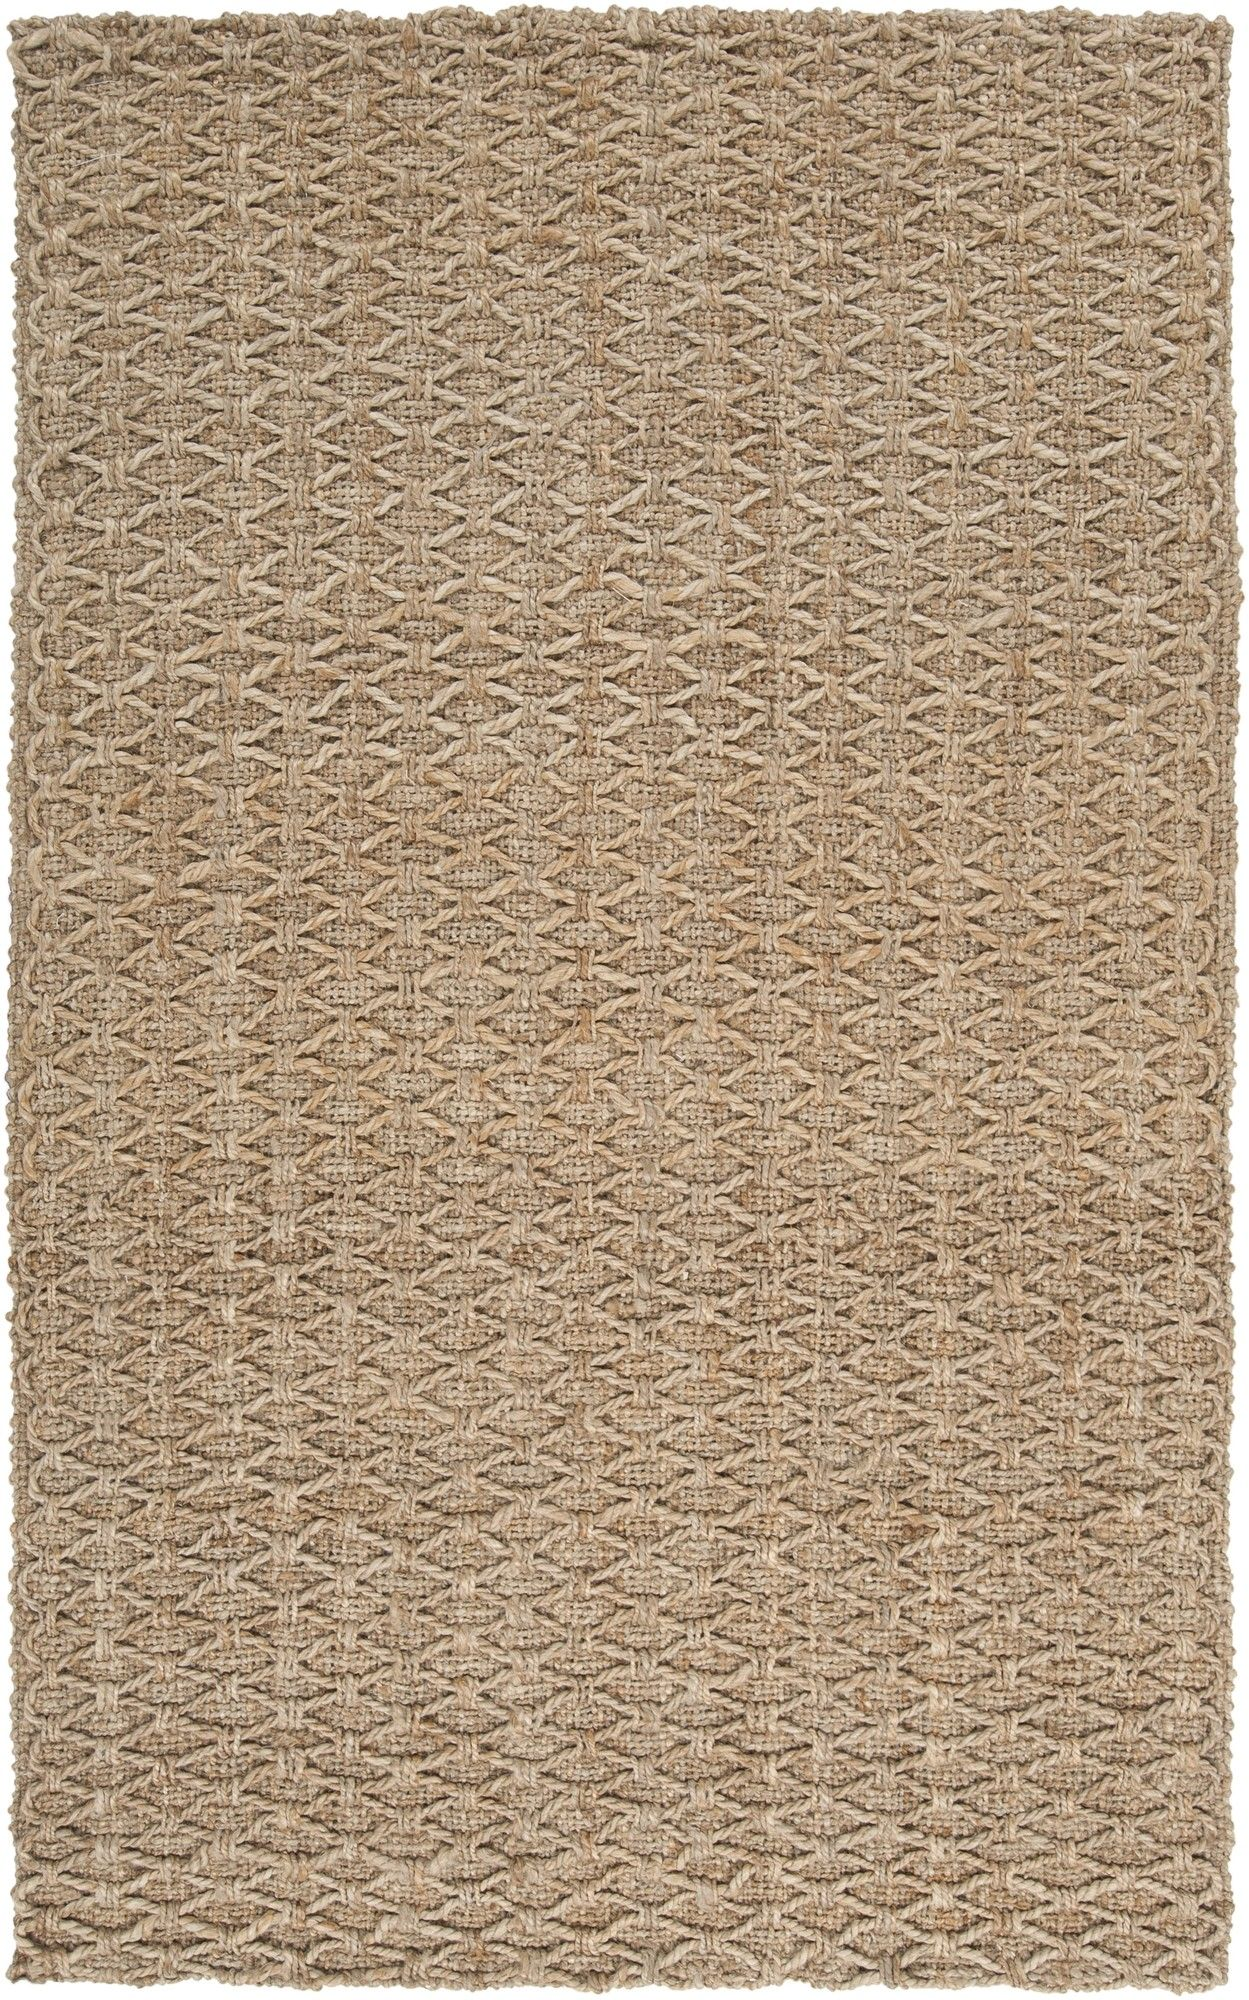 Surya Surya Country Jutes Praline/Tan Rug Buying rugs